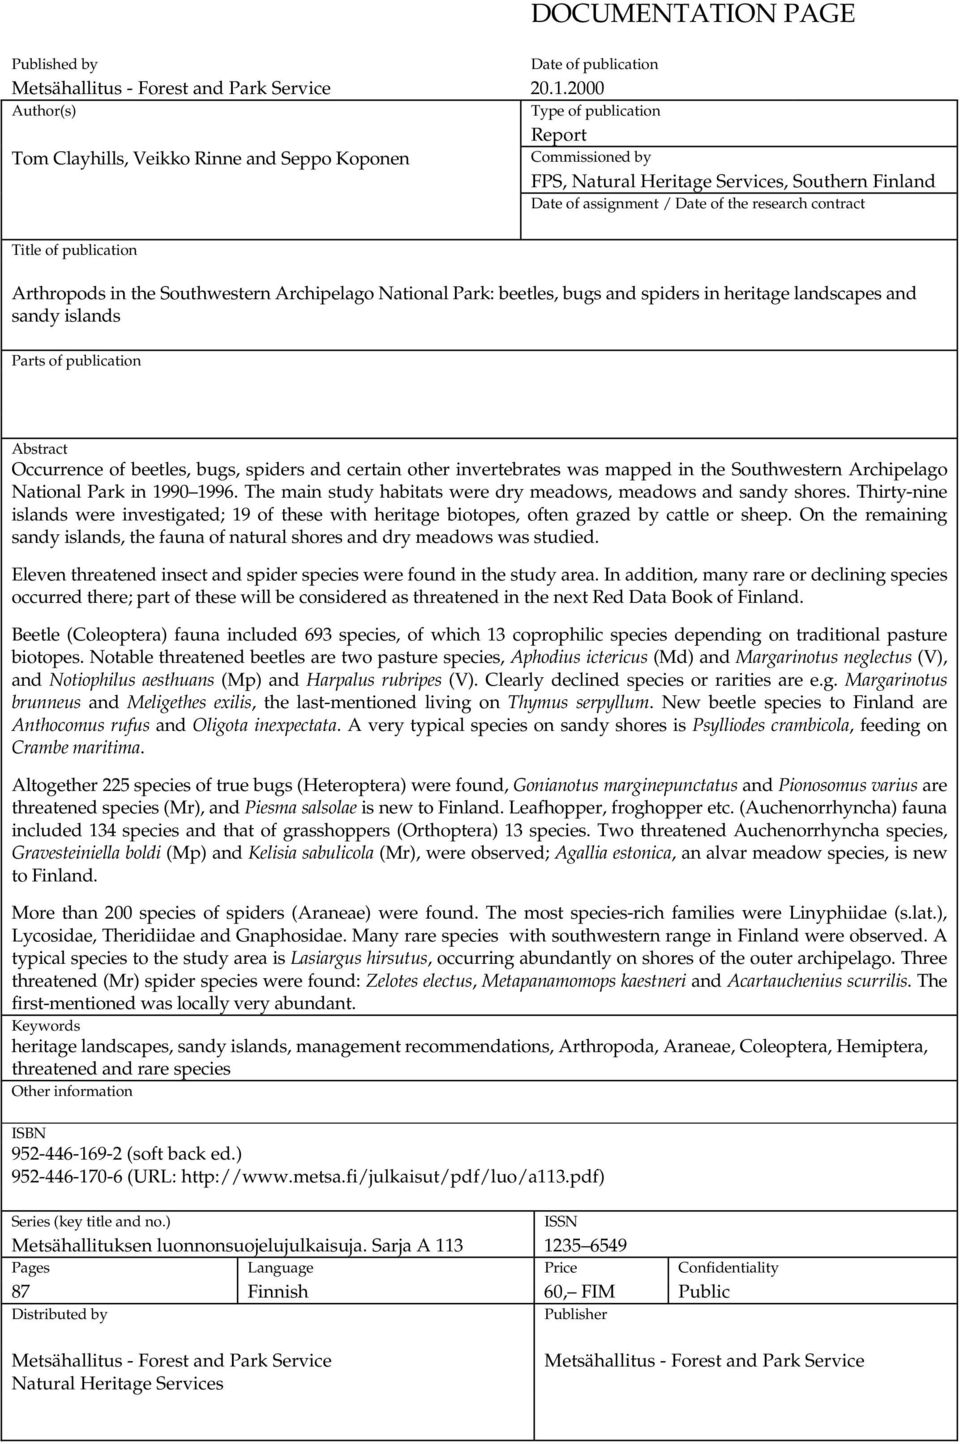 contract Title of publication Arthropods in the Southwestern Archipelago National Park: beetles, bugs and spiders in heritage landscapes and sandy islands Parts of publication Abstract Occurrence of